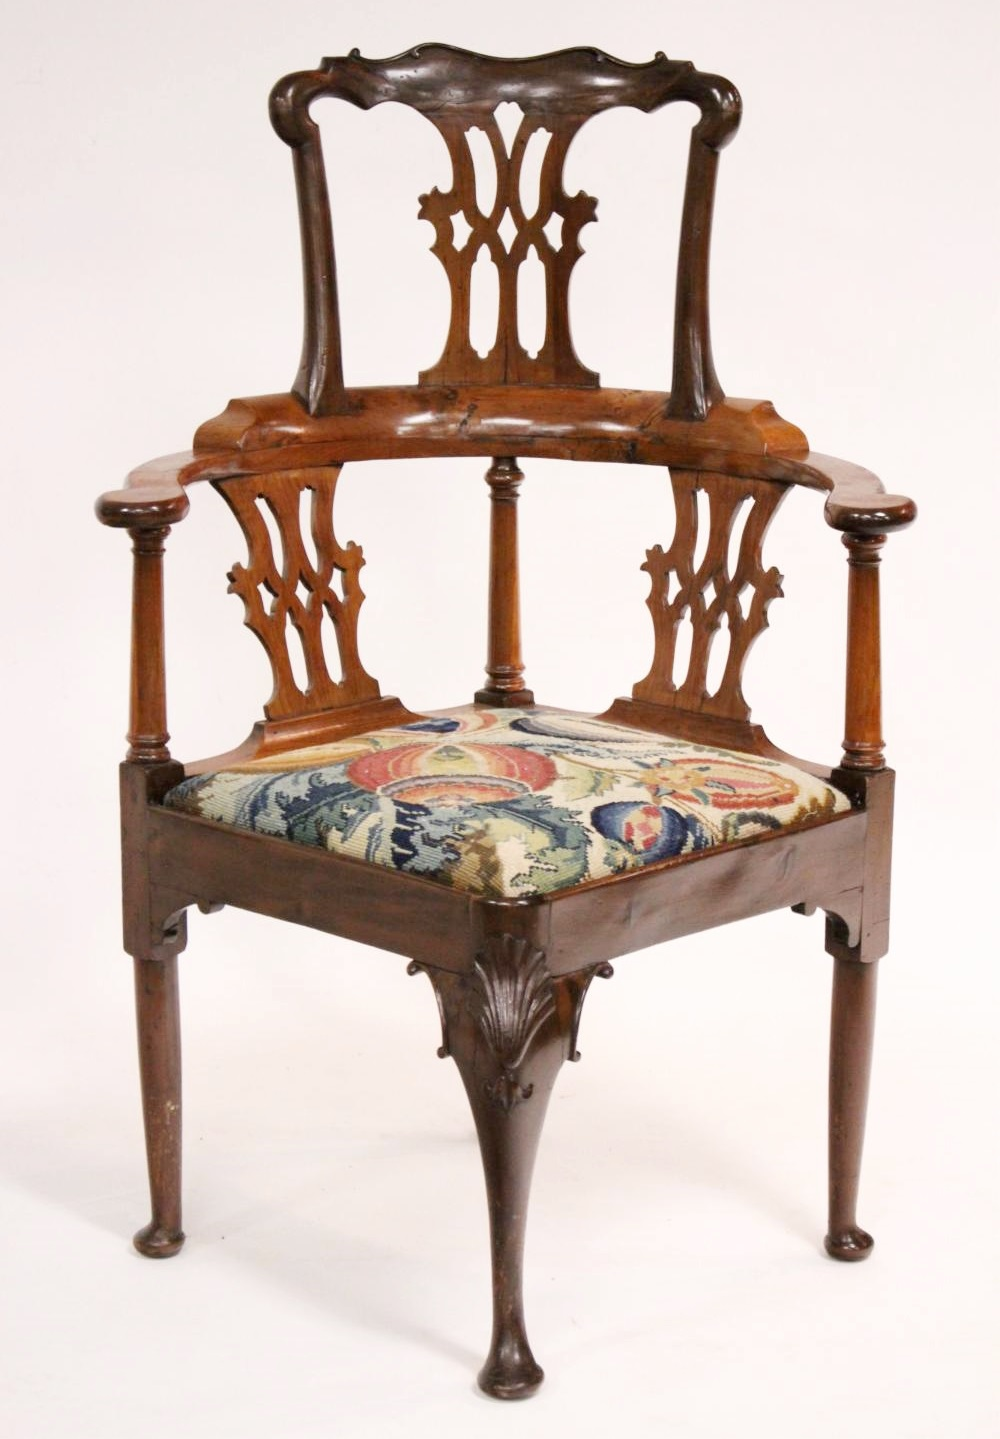 George II Yew Wood Corner Chair, Mid-18th C. Sold For $5,850